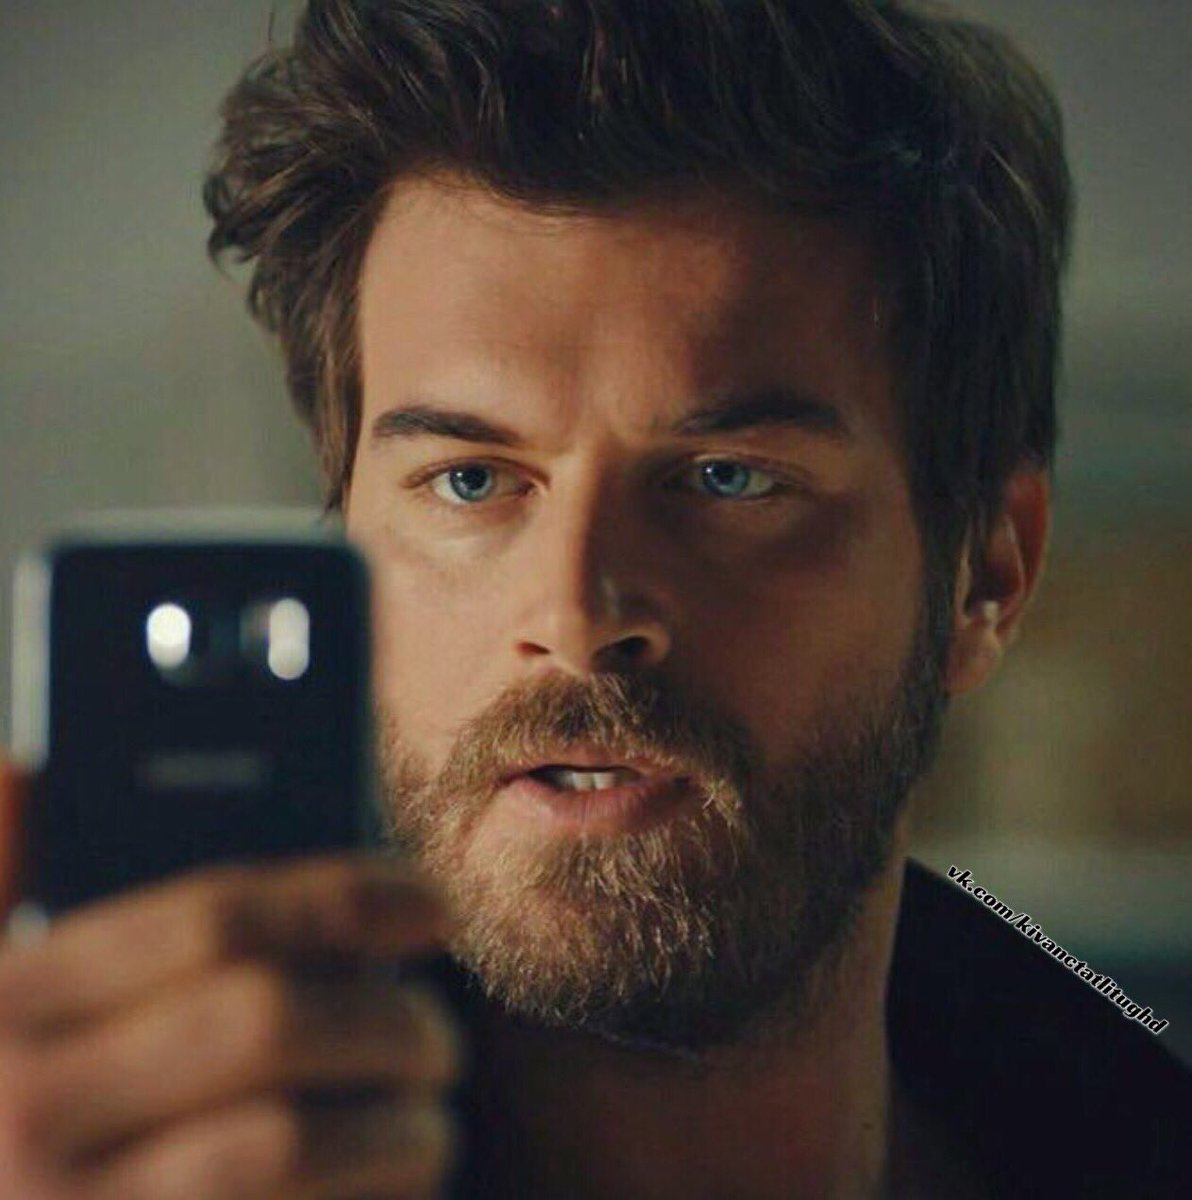 Visit my site at vk and follow me   https:// m.vk.com/kivanctatlitug hd &nbsp; …  #kıvançtatlıtuğ #kivanctatlitug  #vk #followme #takipet <br>http://pic.twitter.com/VsNcjPSwQj